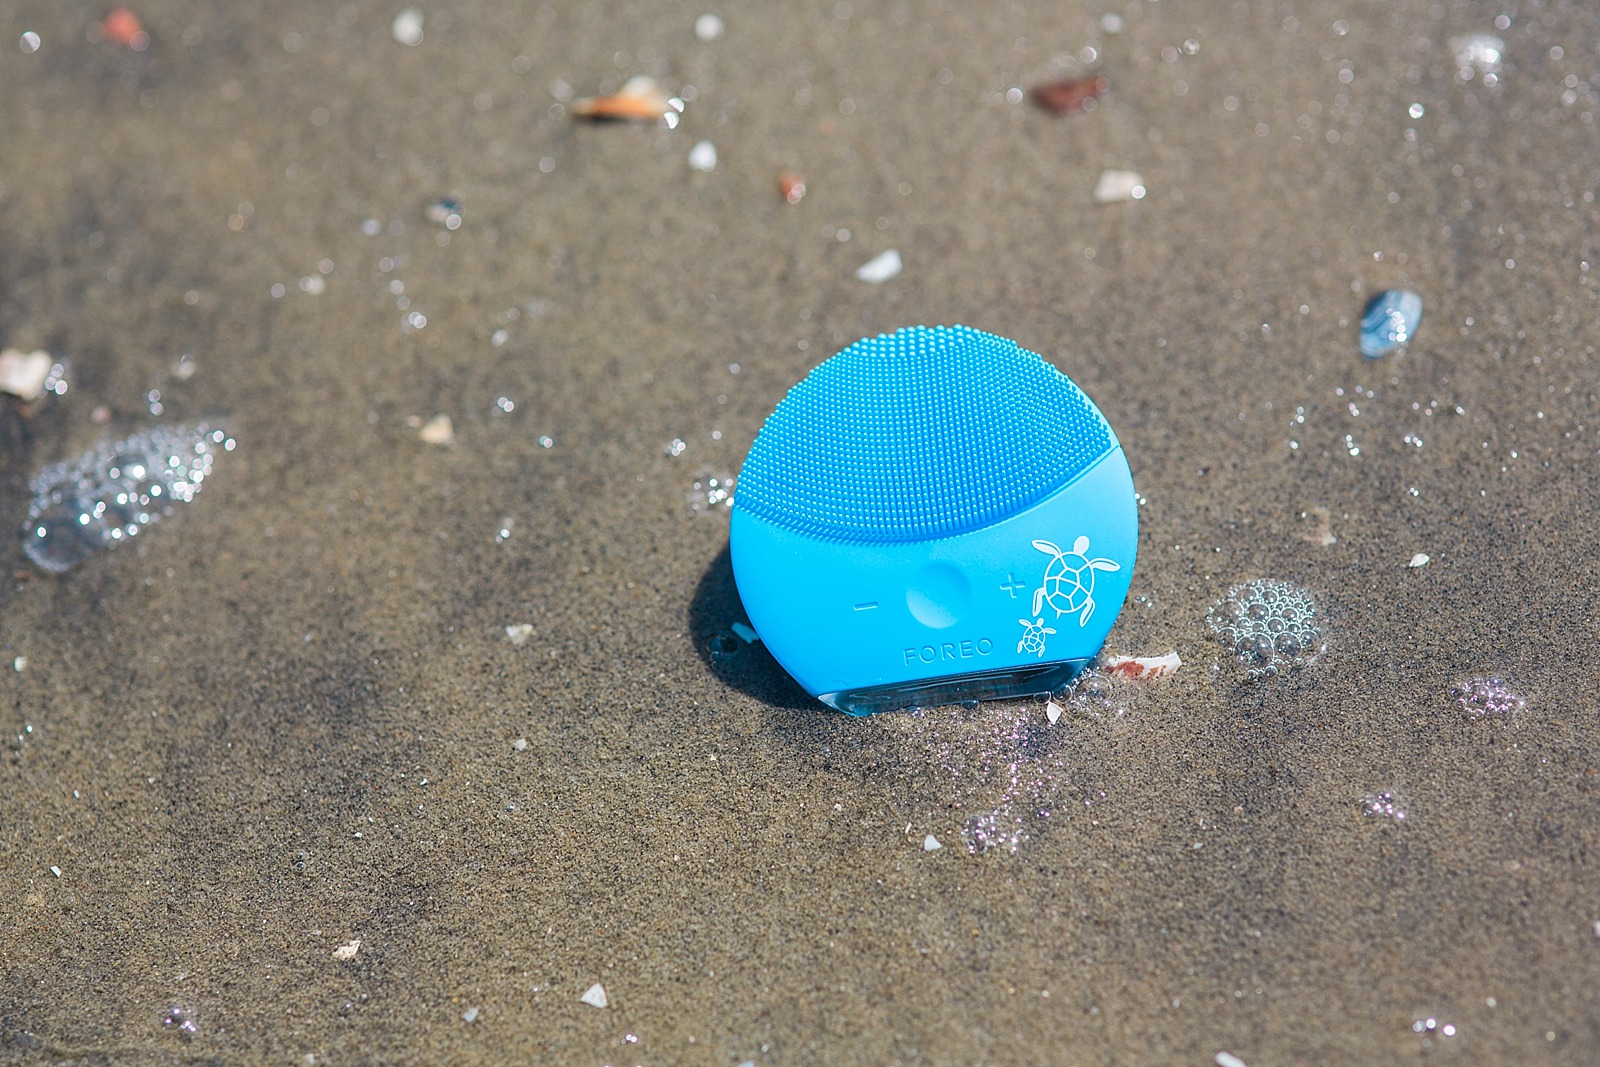 foreo-save-the-sea-luna-mini-2-phoenix-photographer-faces-of-phoenix-photographer-copyright-diana-elizabeth-photography_0132